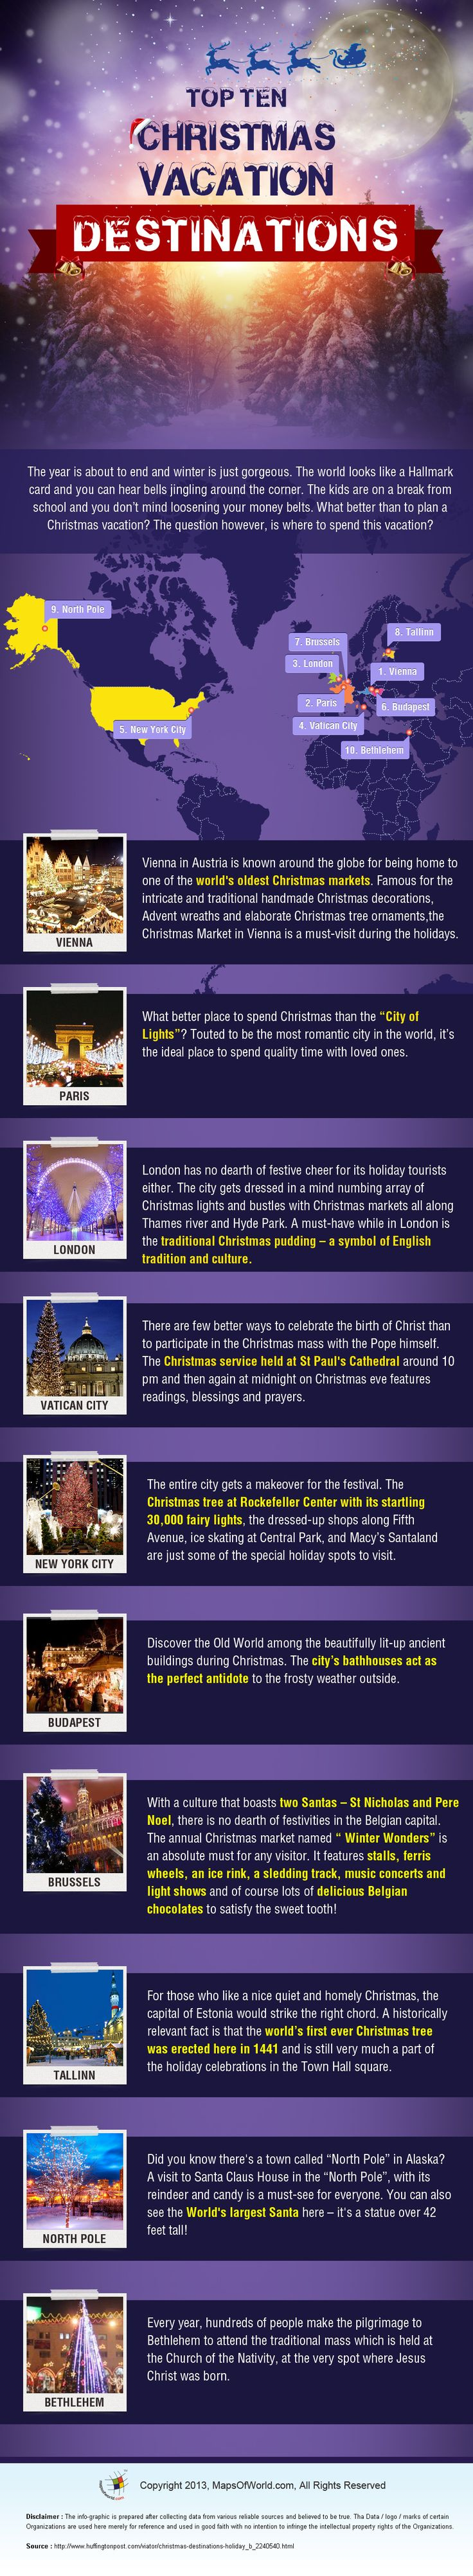 Infographic on Christmas Vacation Destinations